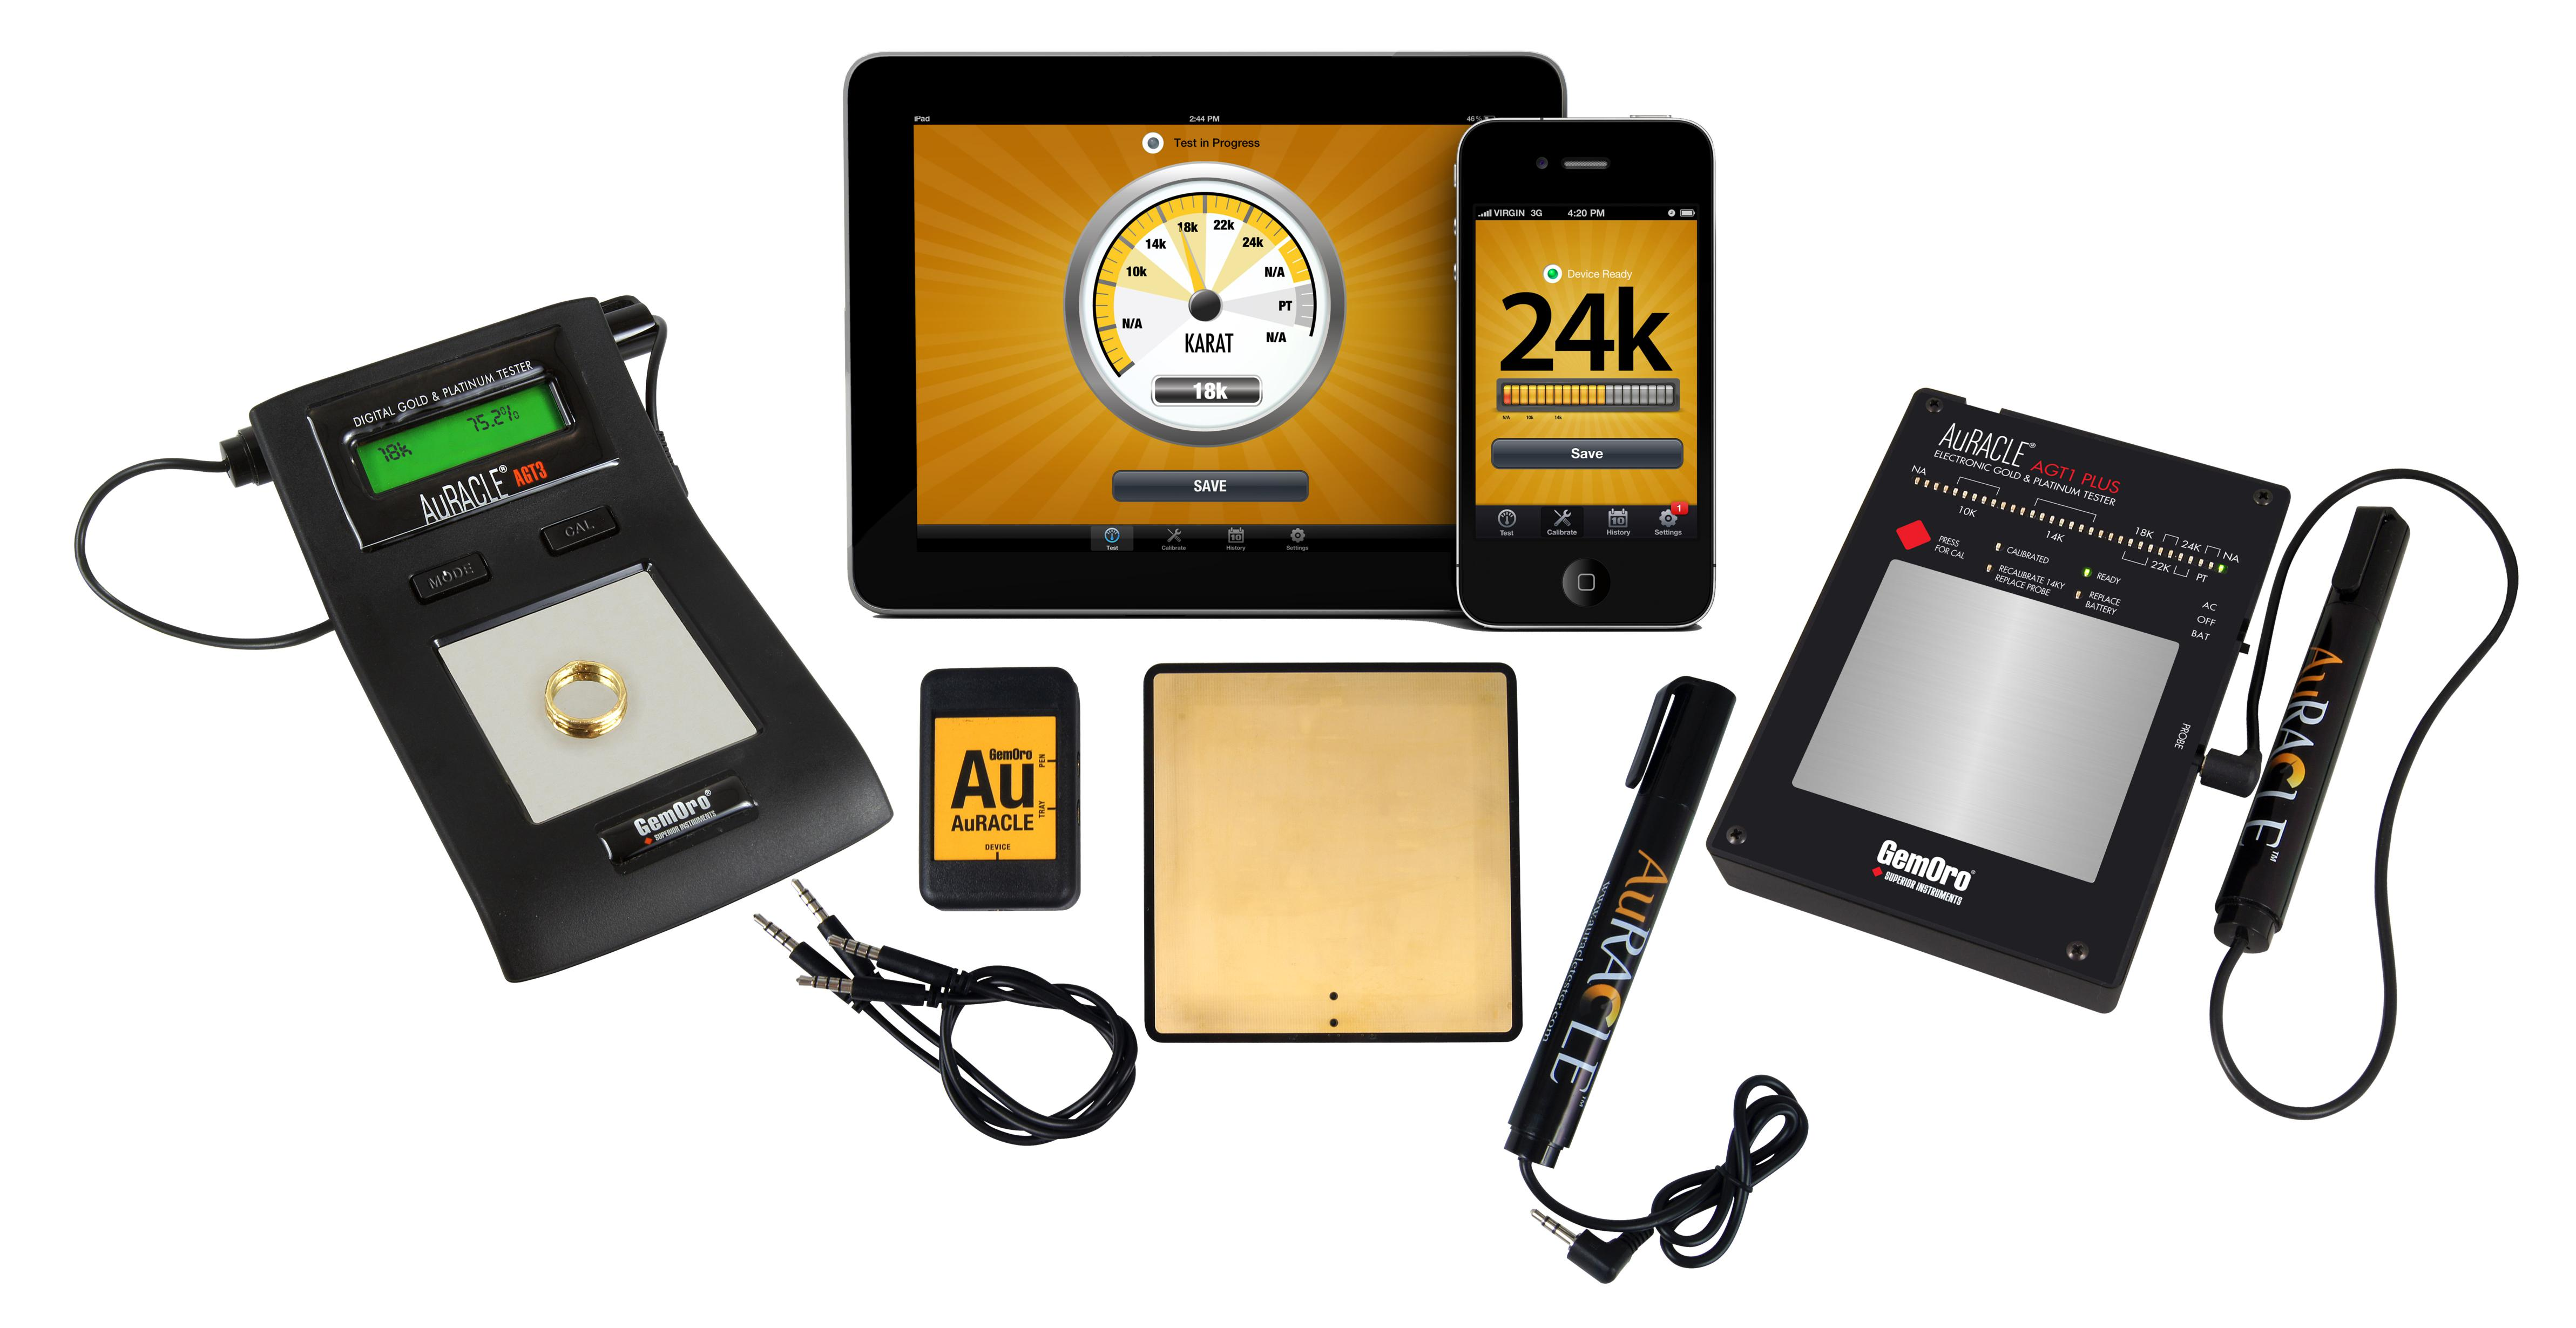 Gold And Silver Tester : Agt mobile gold tester auracle